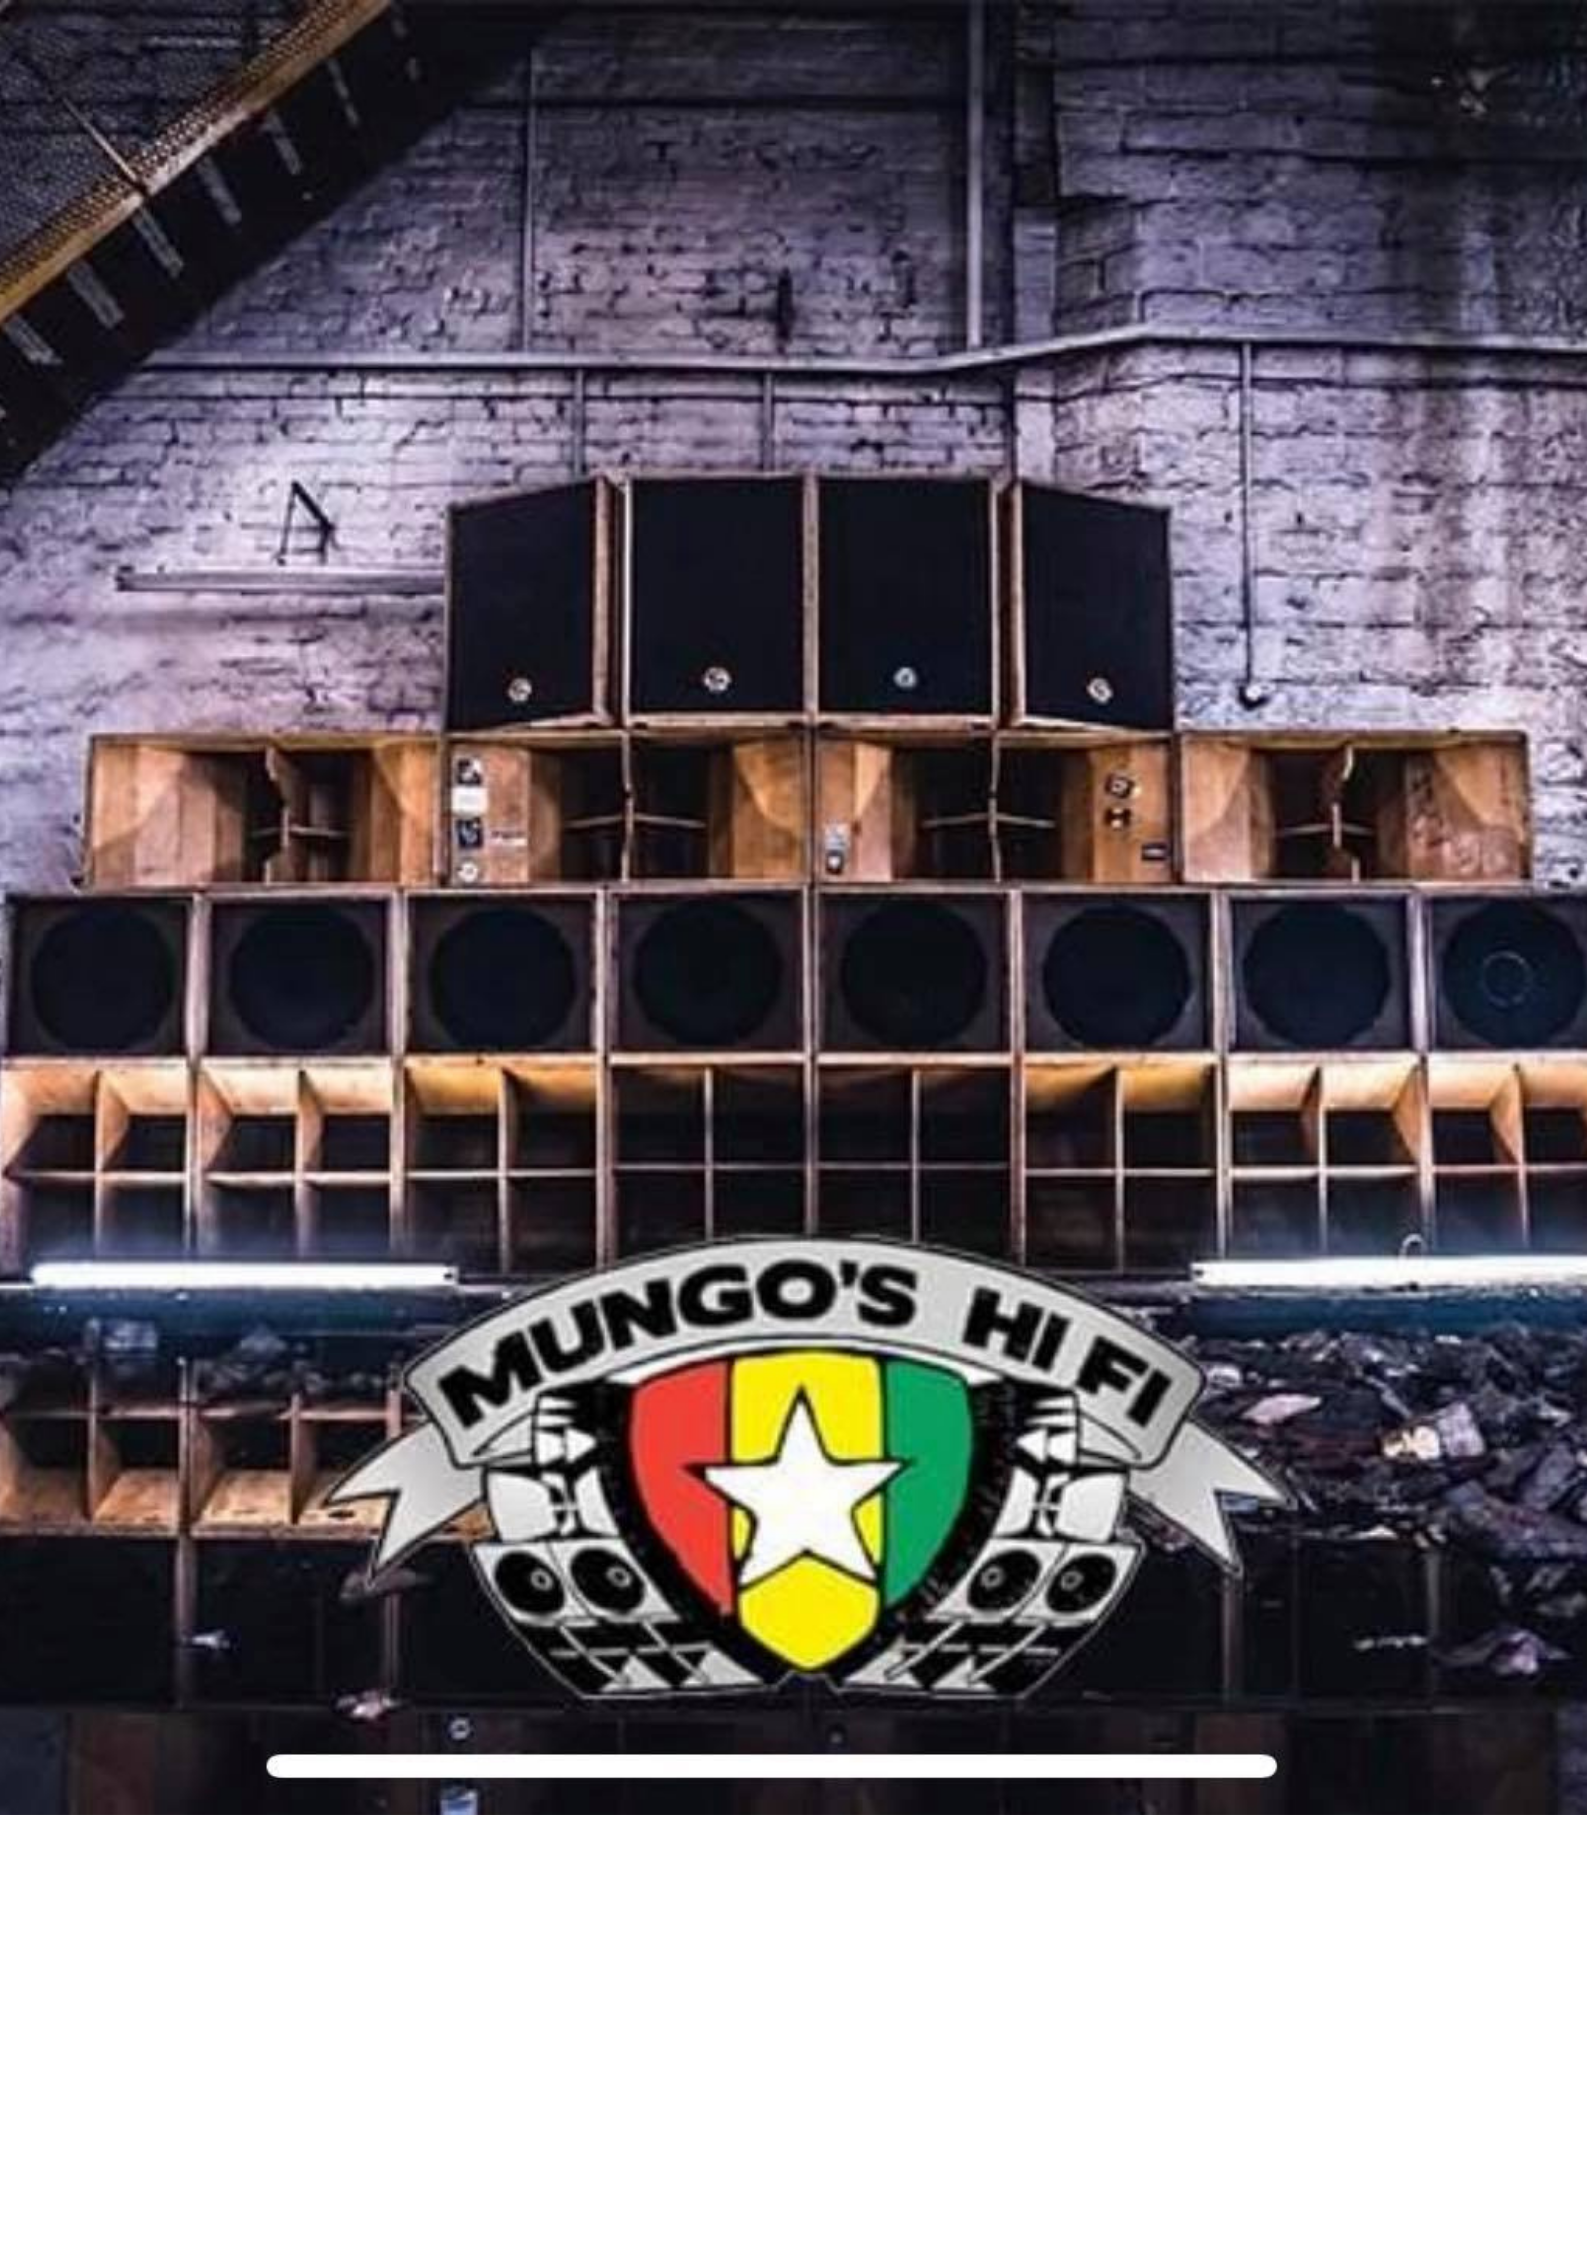 Event Poster For Mungo's Hi Fi Soundsystem Ft. Charley P